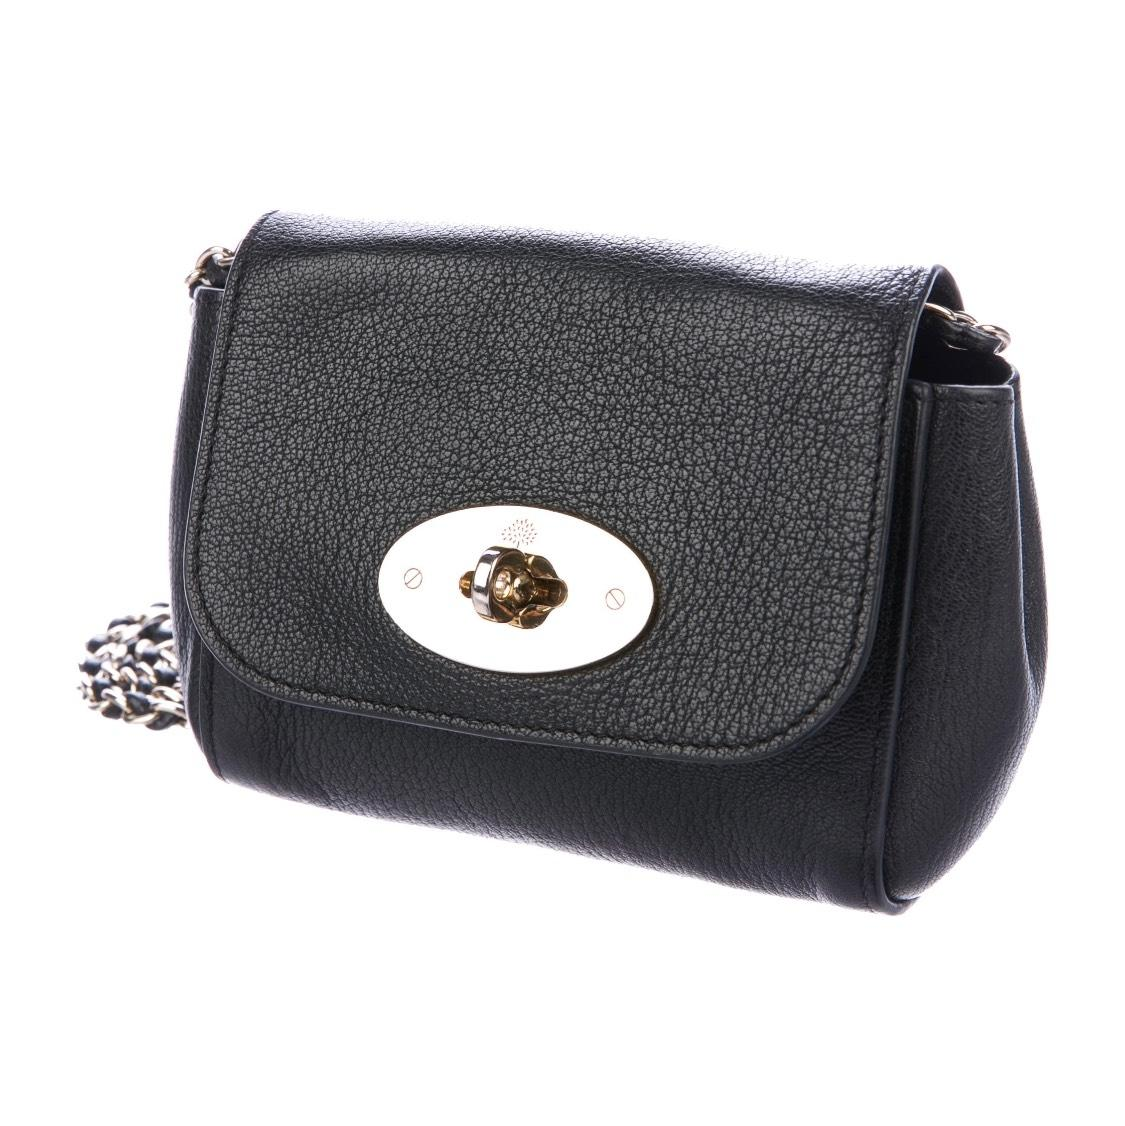 ... new zealand mulberry mini lily black leather cross body bag tradesy  a5ad8 ce96b 72aa1c36fdb64